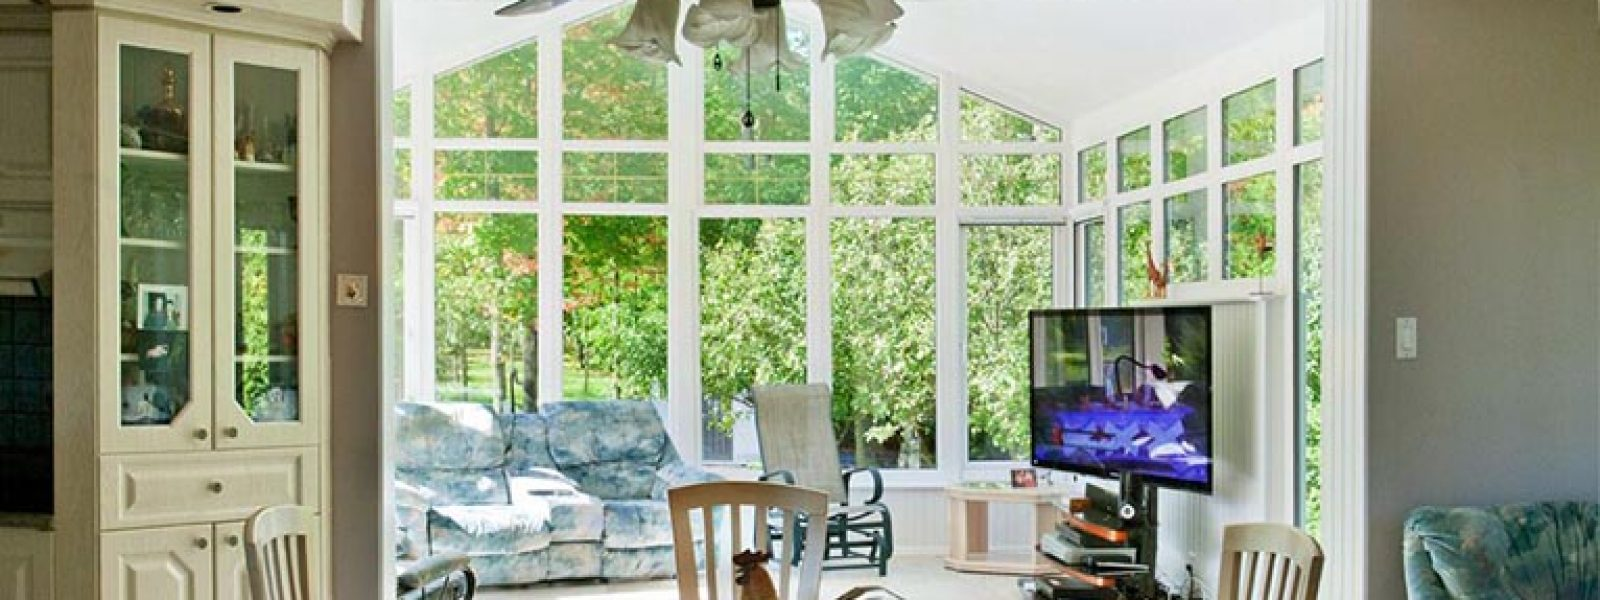 A Pricing Guide How Much Will My Sunroom Cost